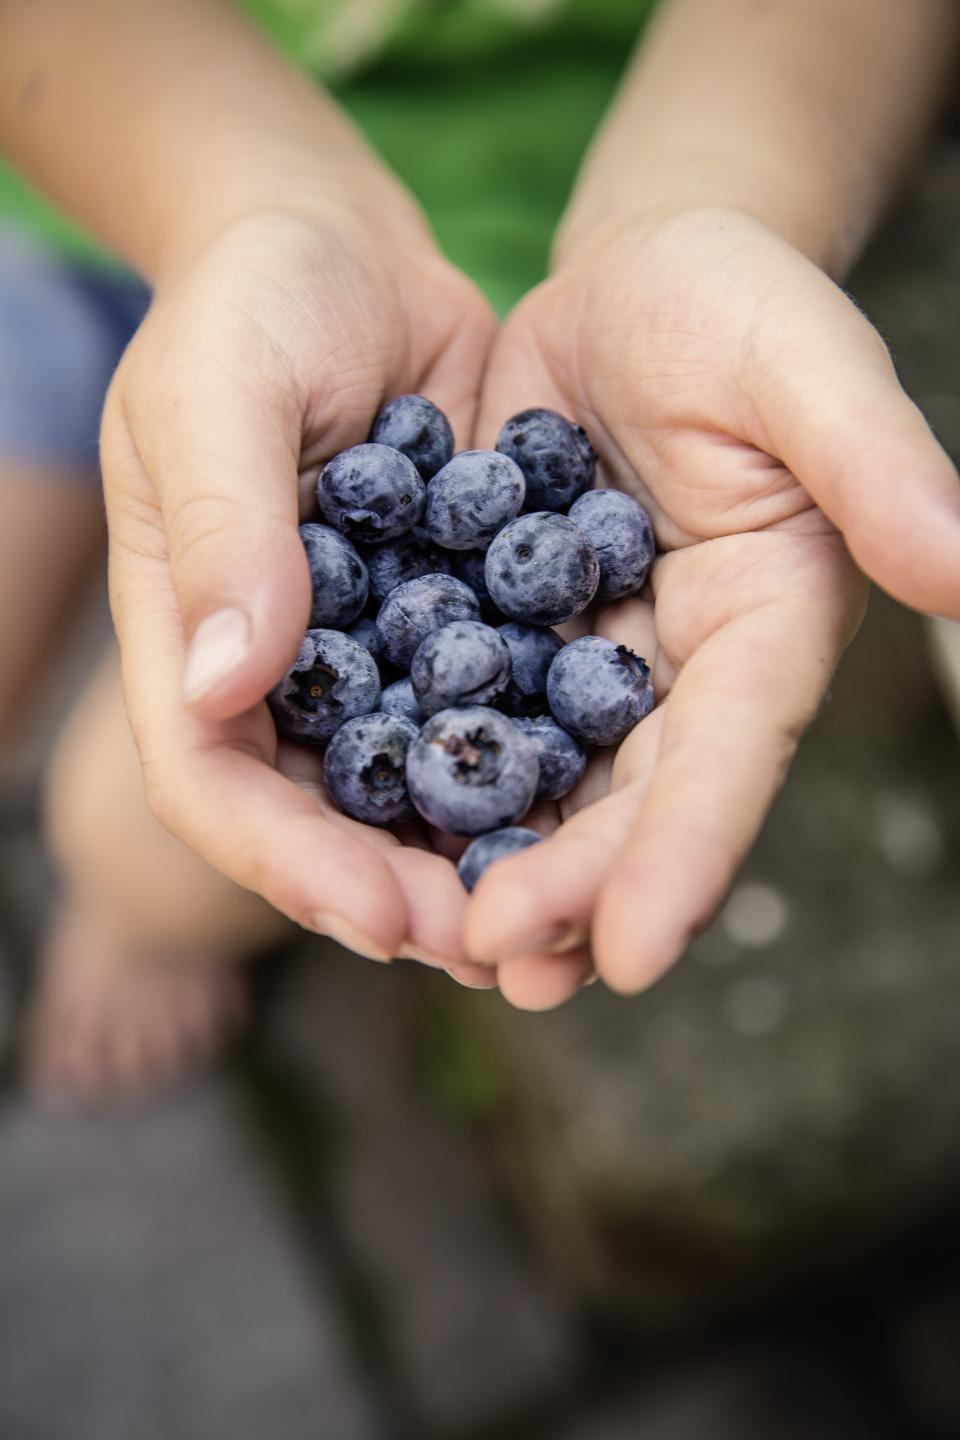 berry blueberry fruit food palm hand blur